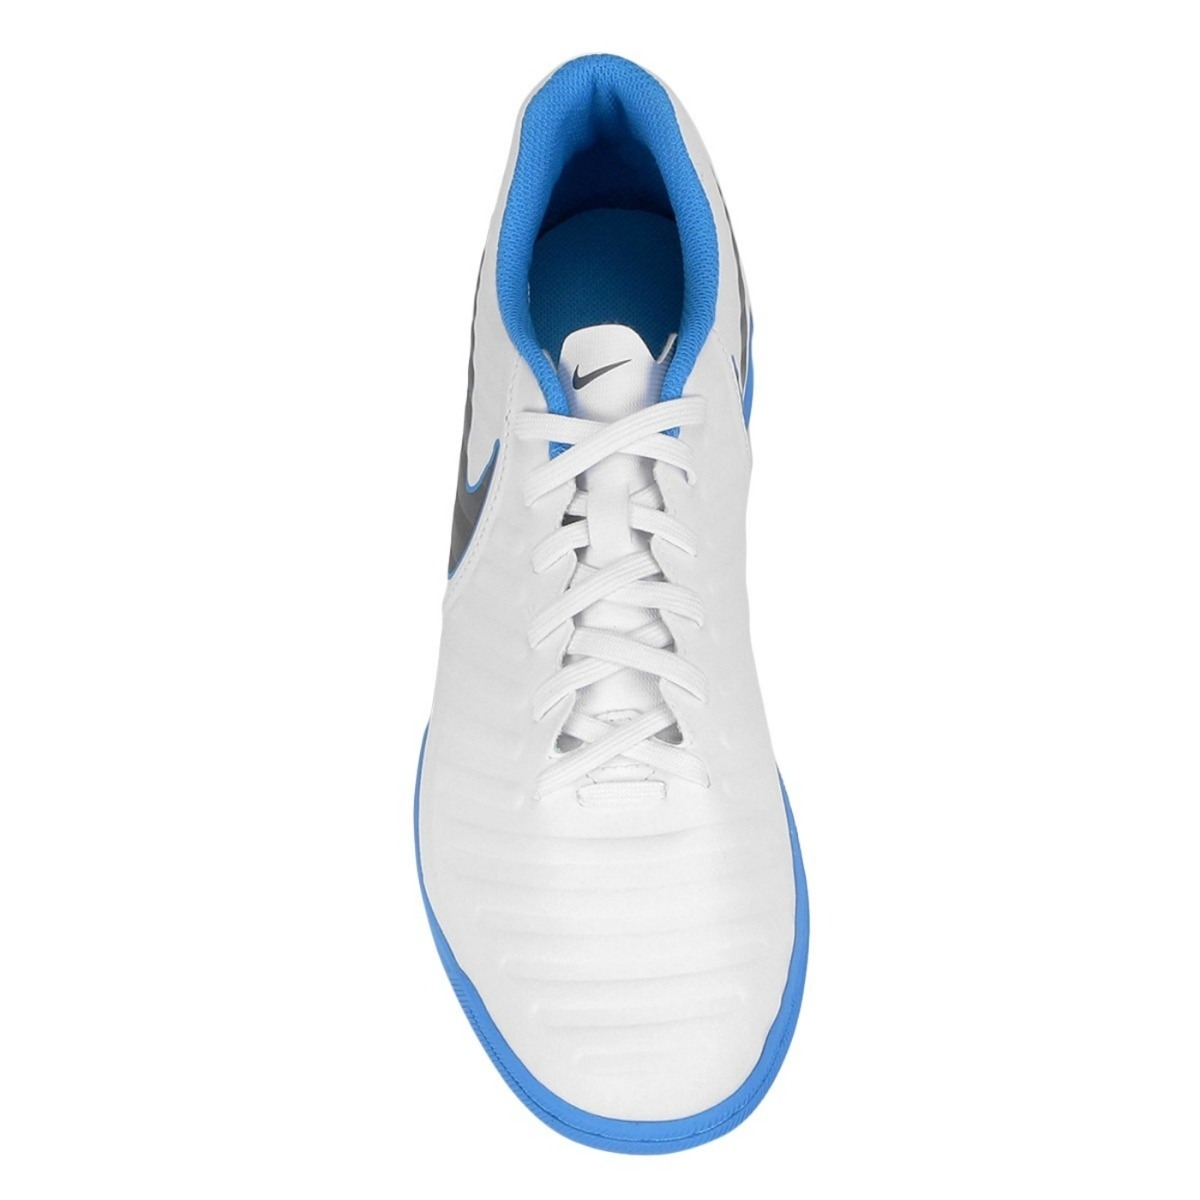 8e048714ca ... chuteira futsal adulto nike tiempo legend 7 club ic. Carregando zoom.  online here 88815